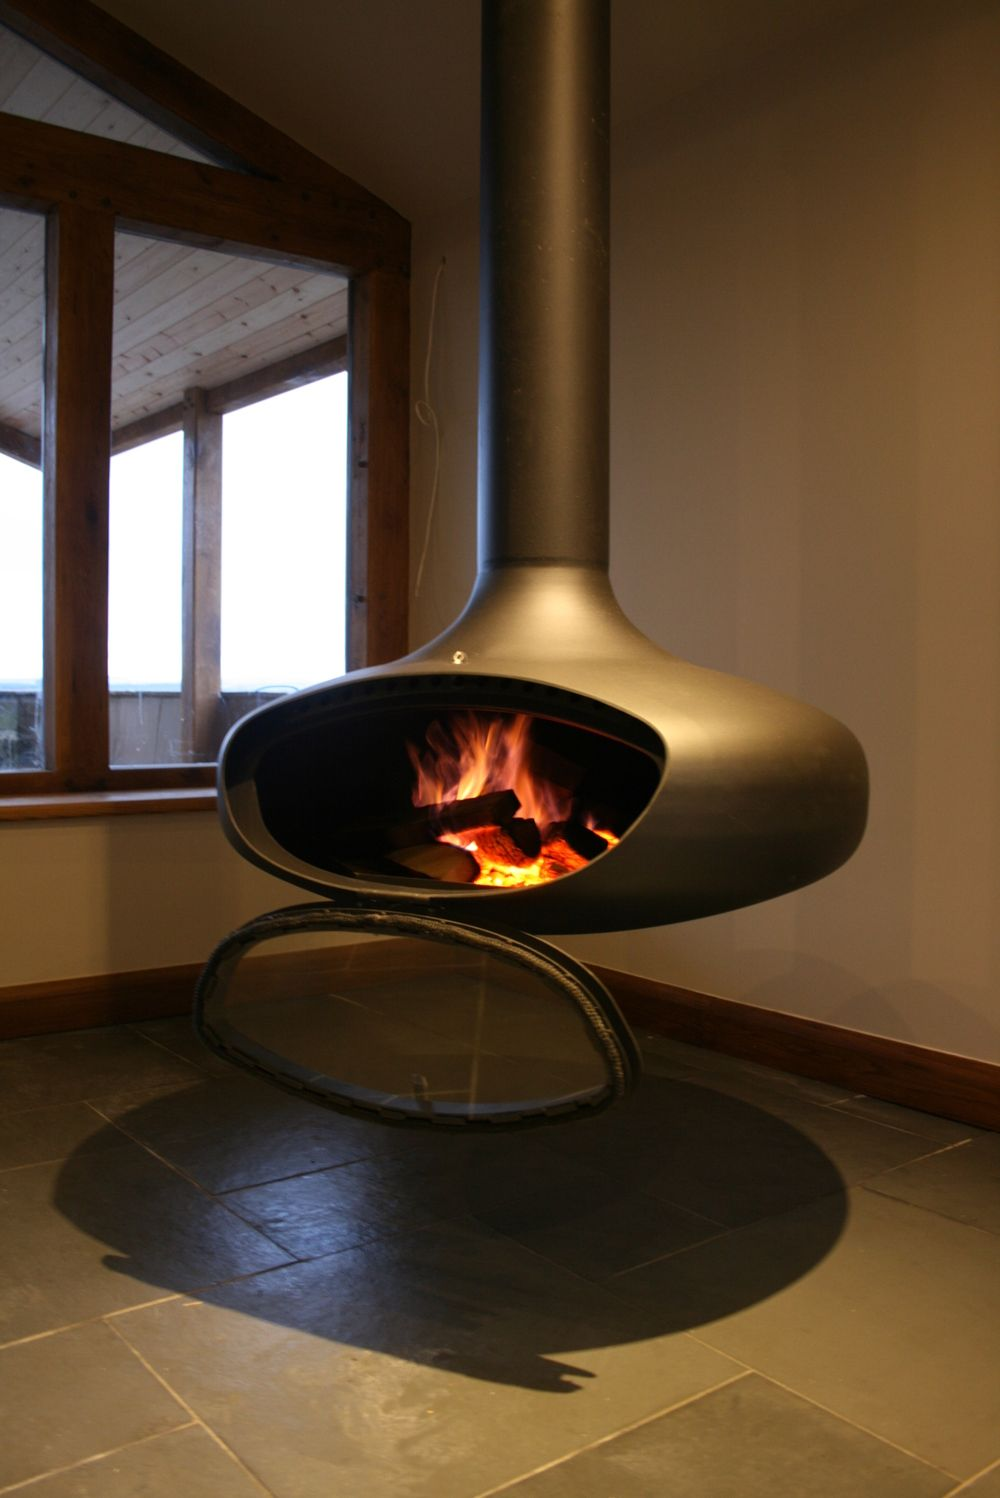 FireBob suspended wood burning stove by Firemaker door open